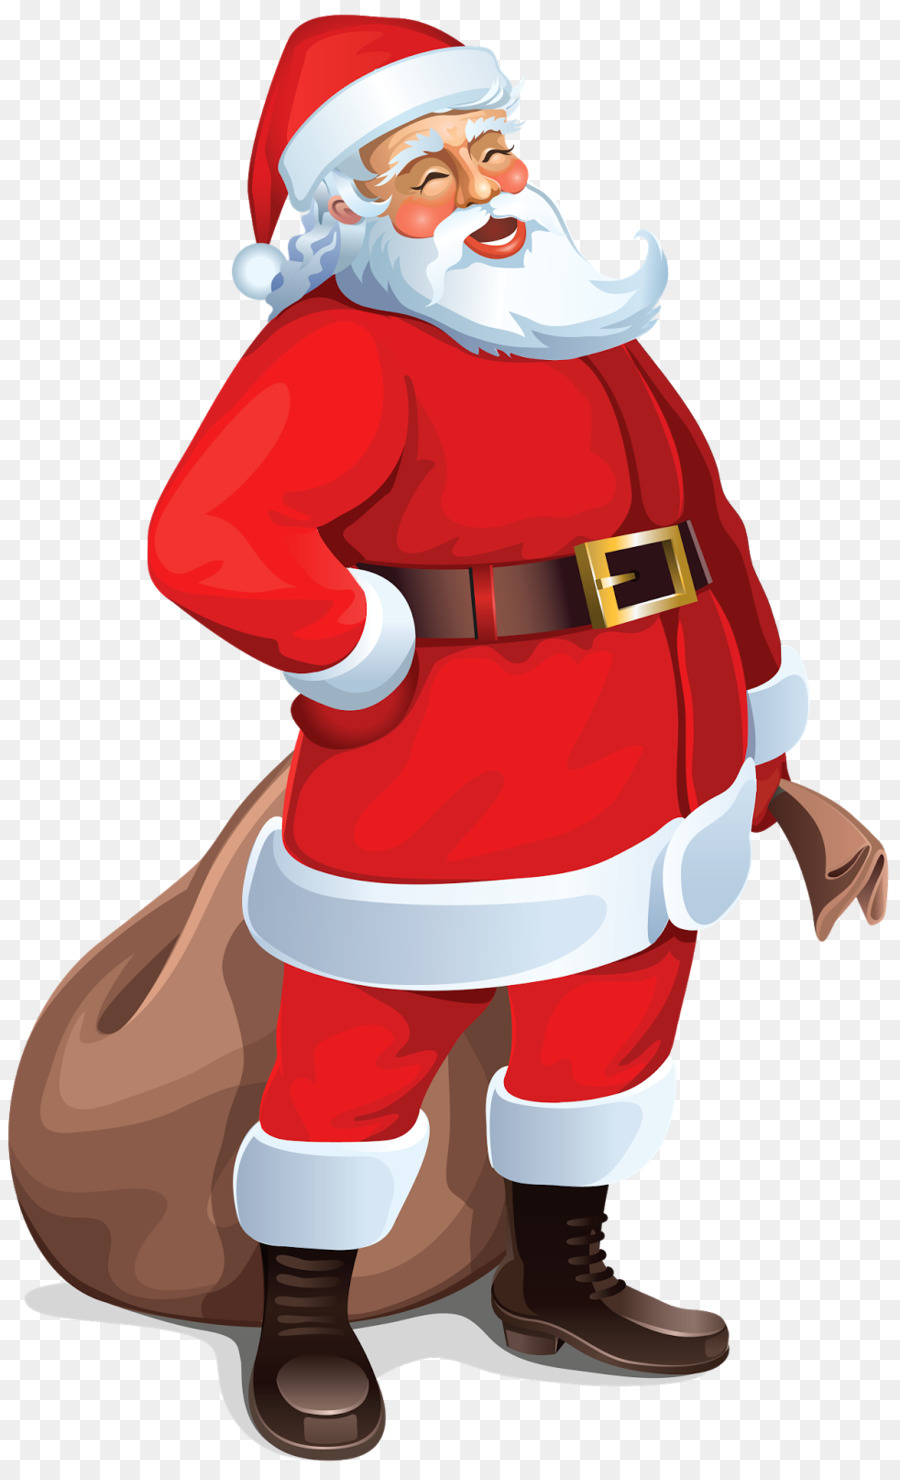 hight resolution of santa claus document presentation standing costume png